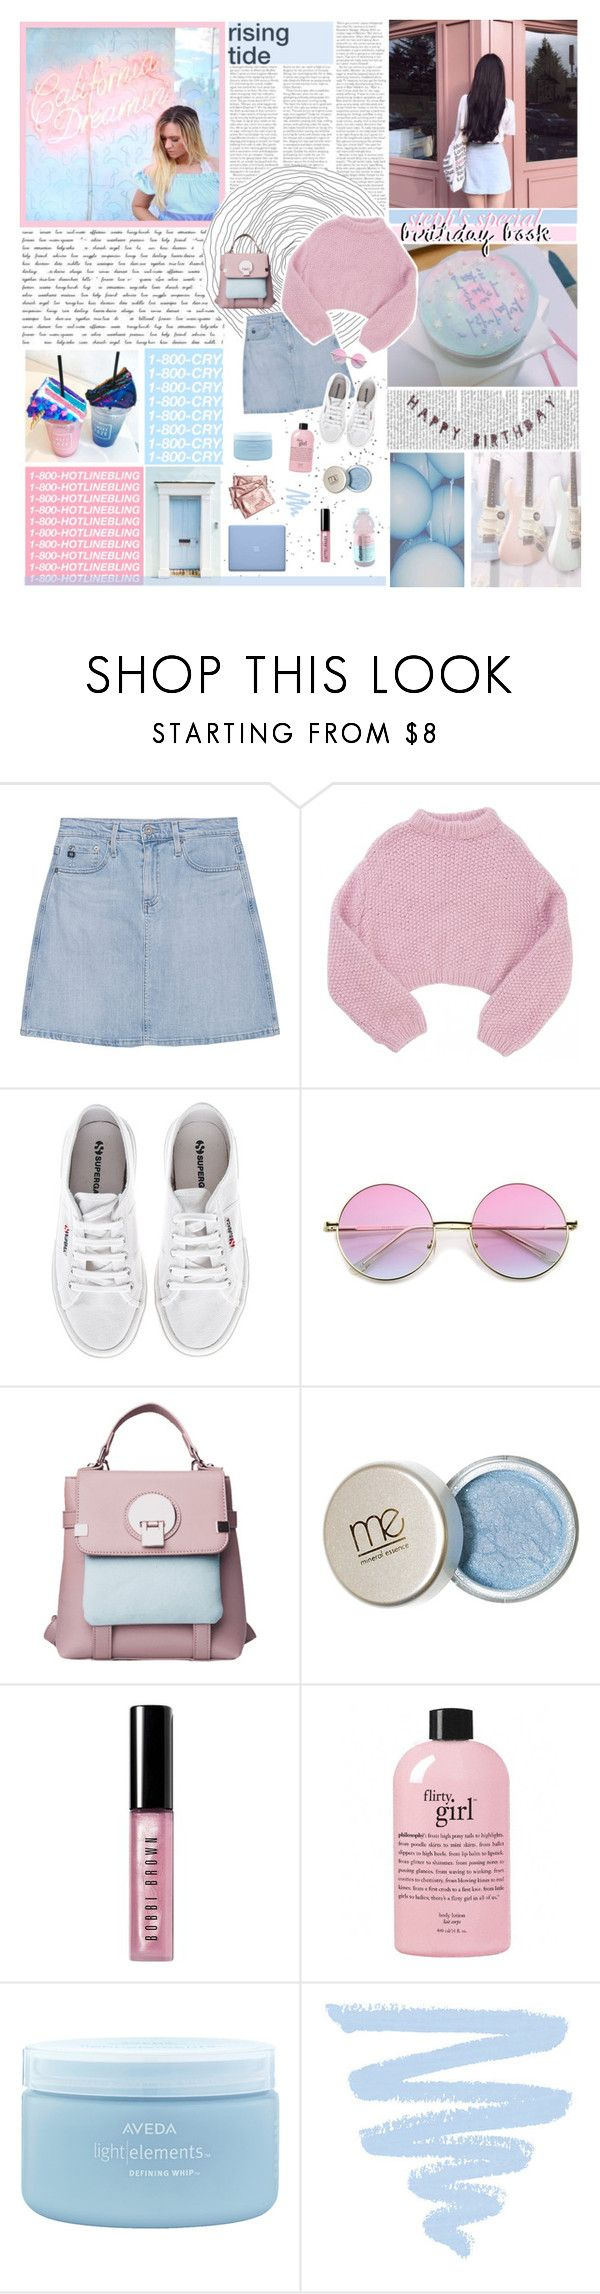 """""""steph's birthday book! {rtd}"""" by ecclxsiastes ❤ liked on Polyvore featuring GET LOST, AG Adriano Goldschmied, Lala Berlin, Superga, Bobbi Brown Cosmetics, philosophy, Aveda and 214"""